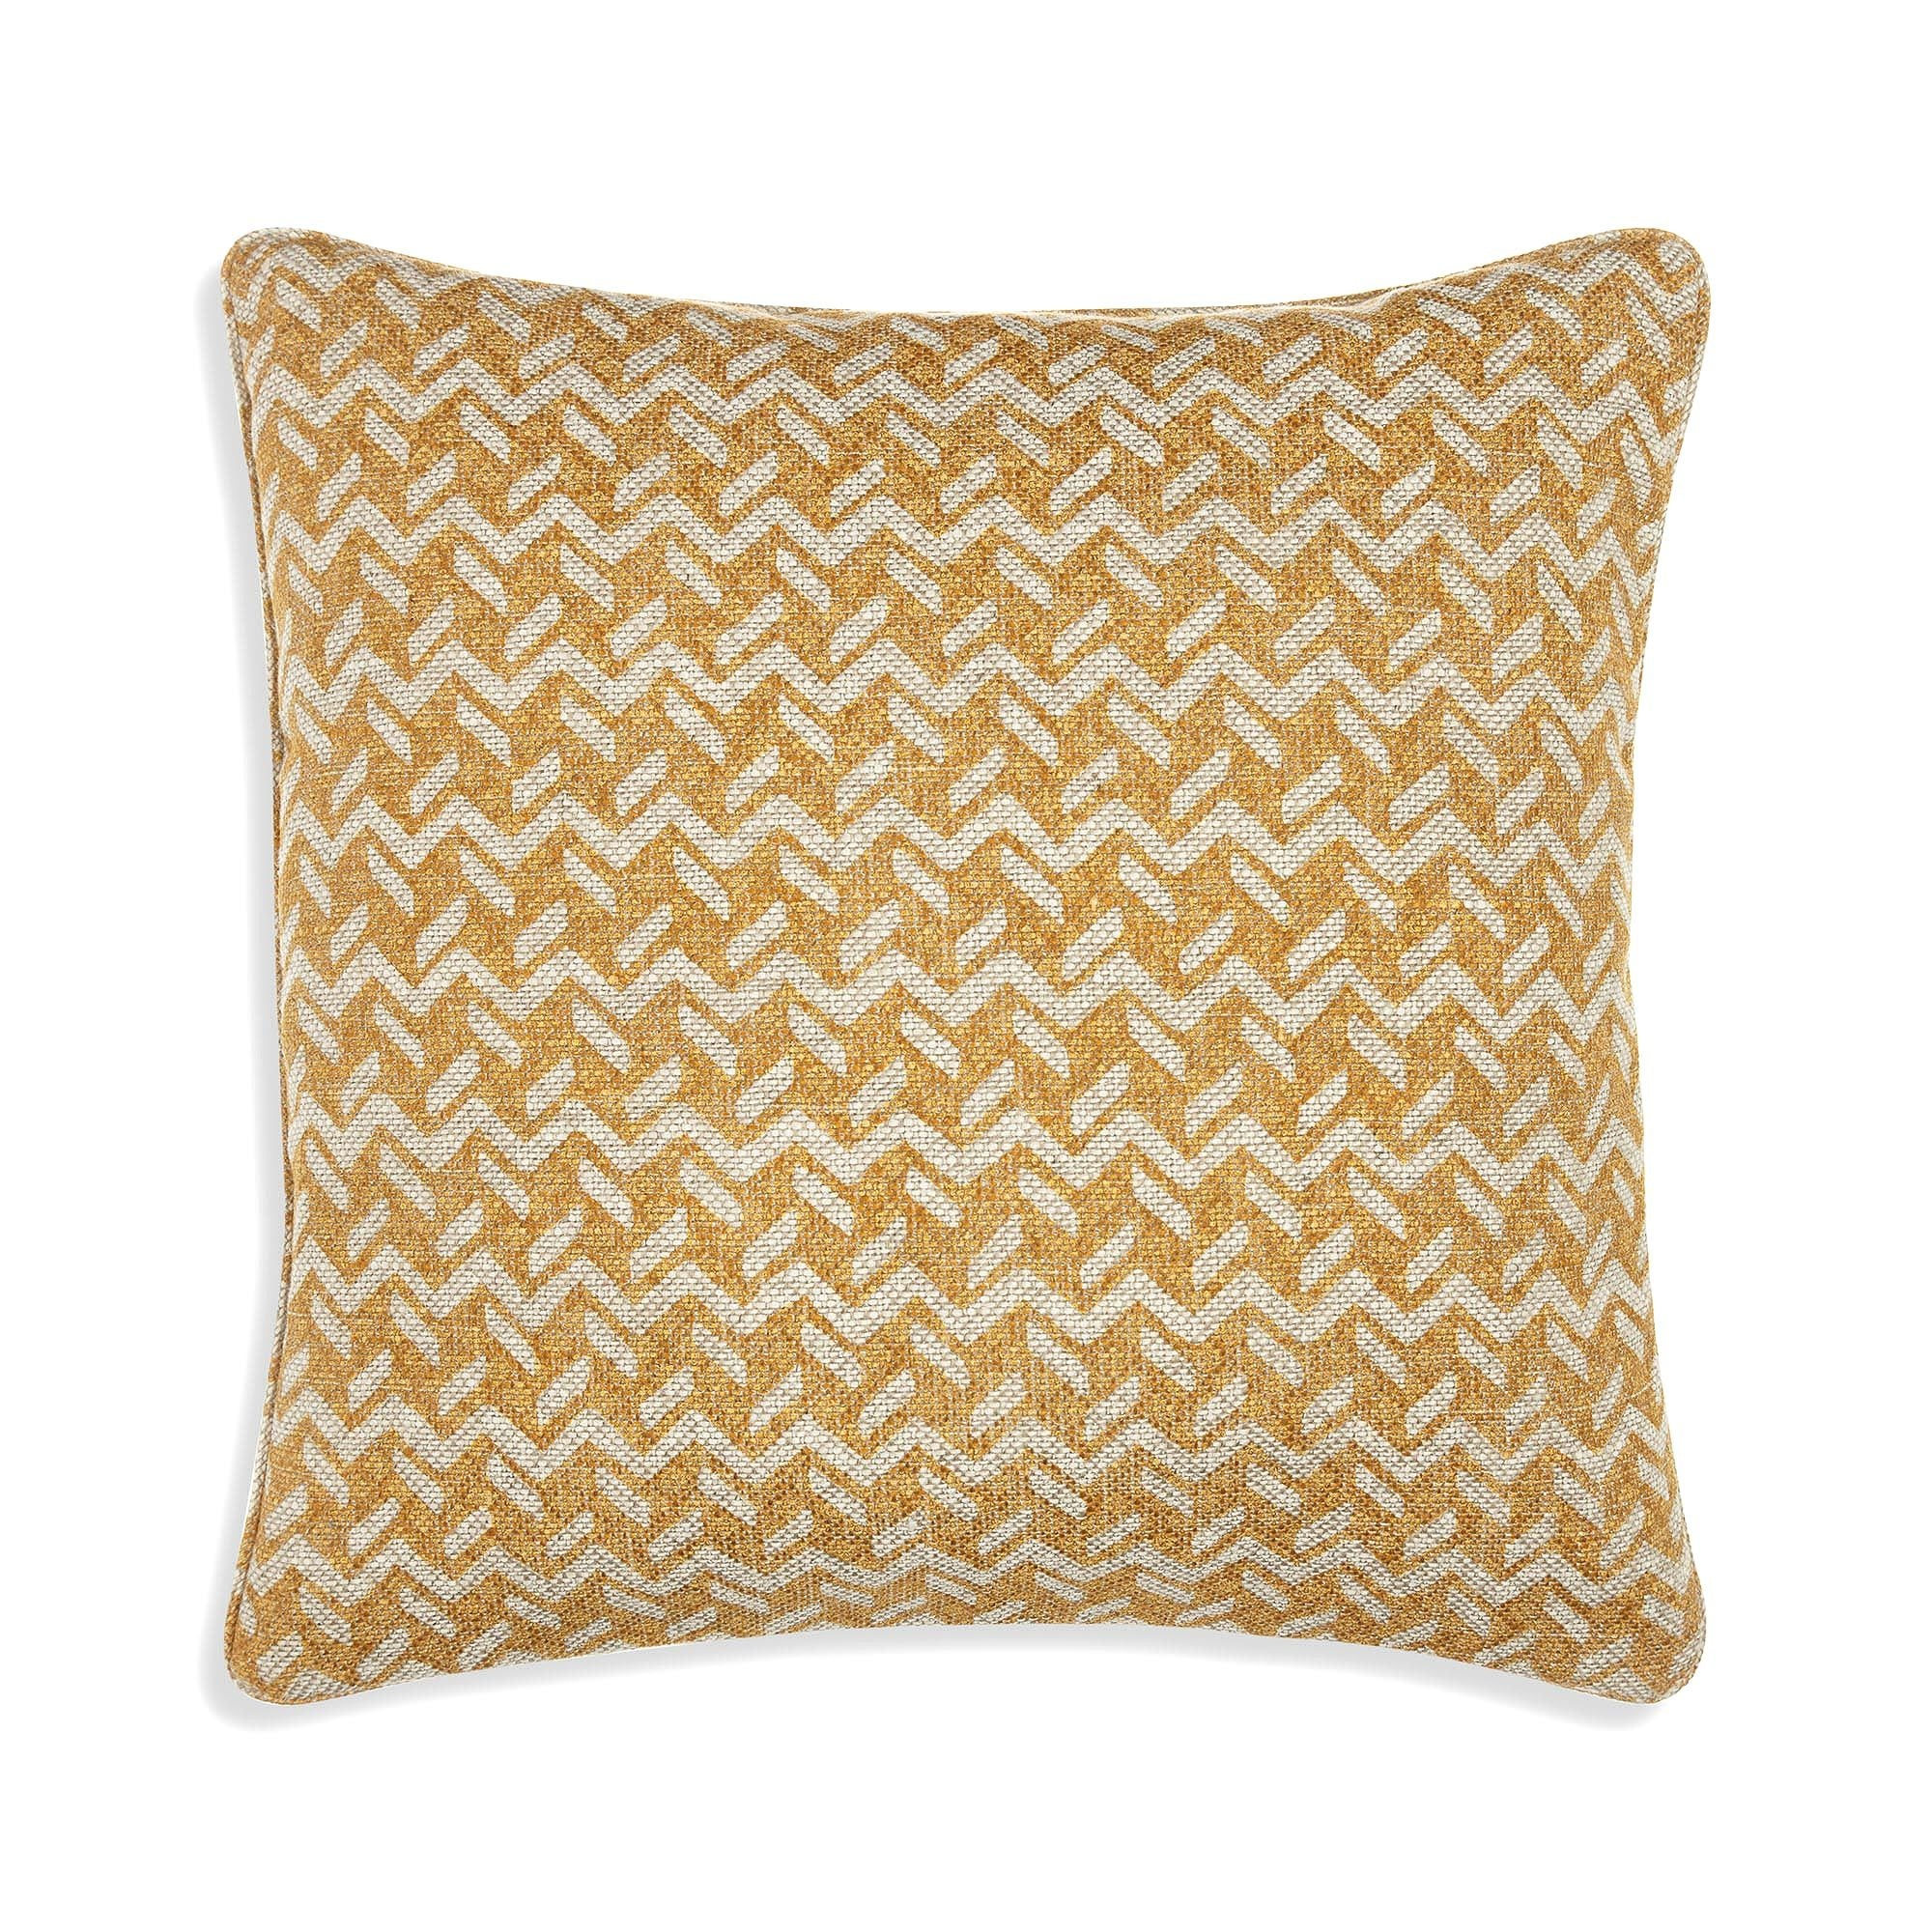 Fermoie Cushion in Yellow Chiltern